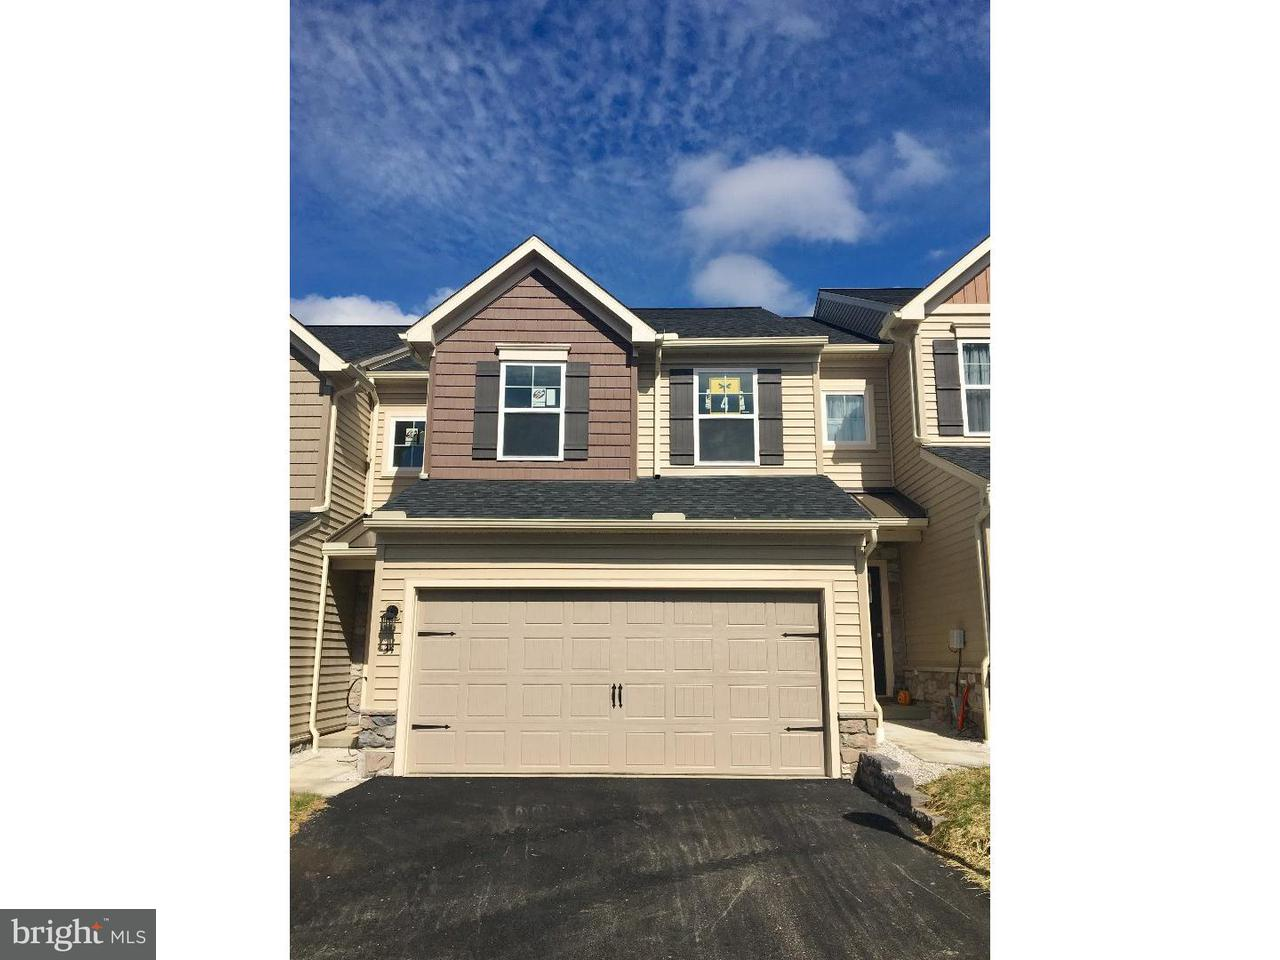 Townhouse for Sale at 34 WEXFORD CT #4 Morgantown, Pennsylvania 19543 United States